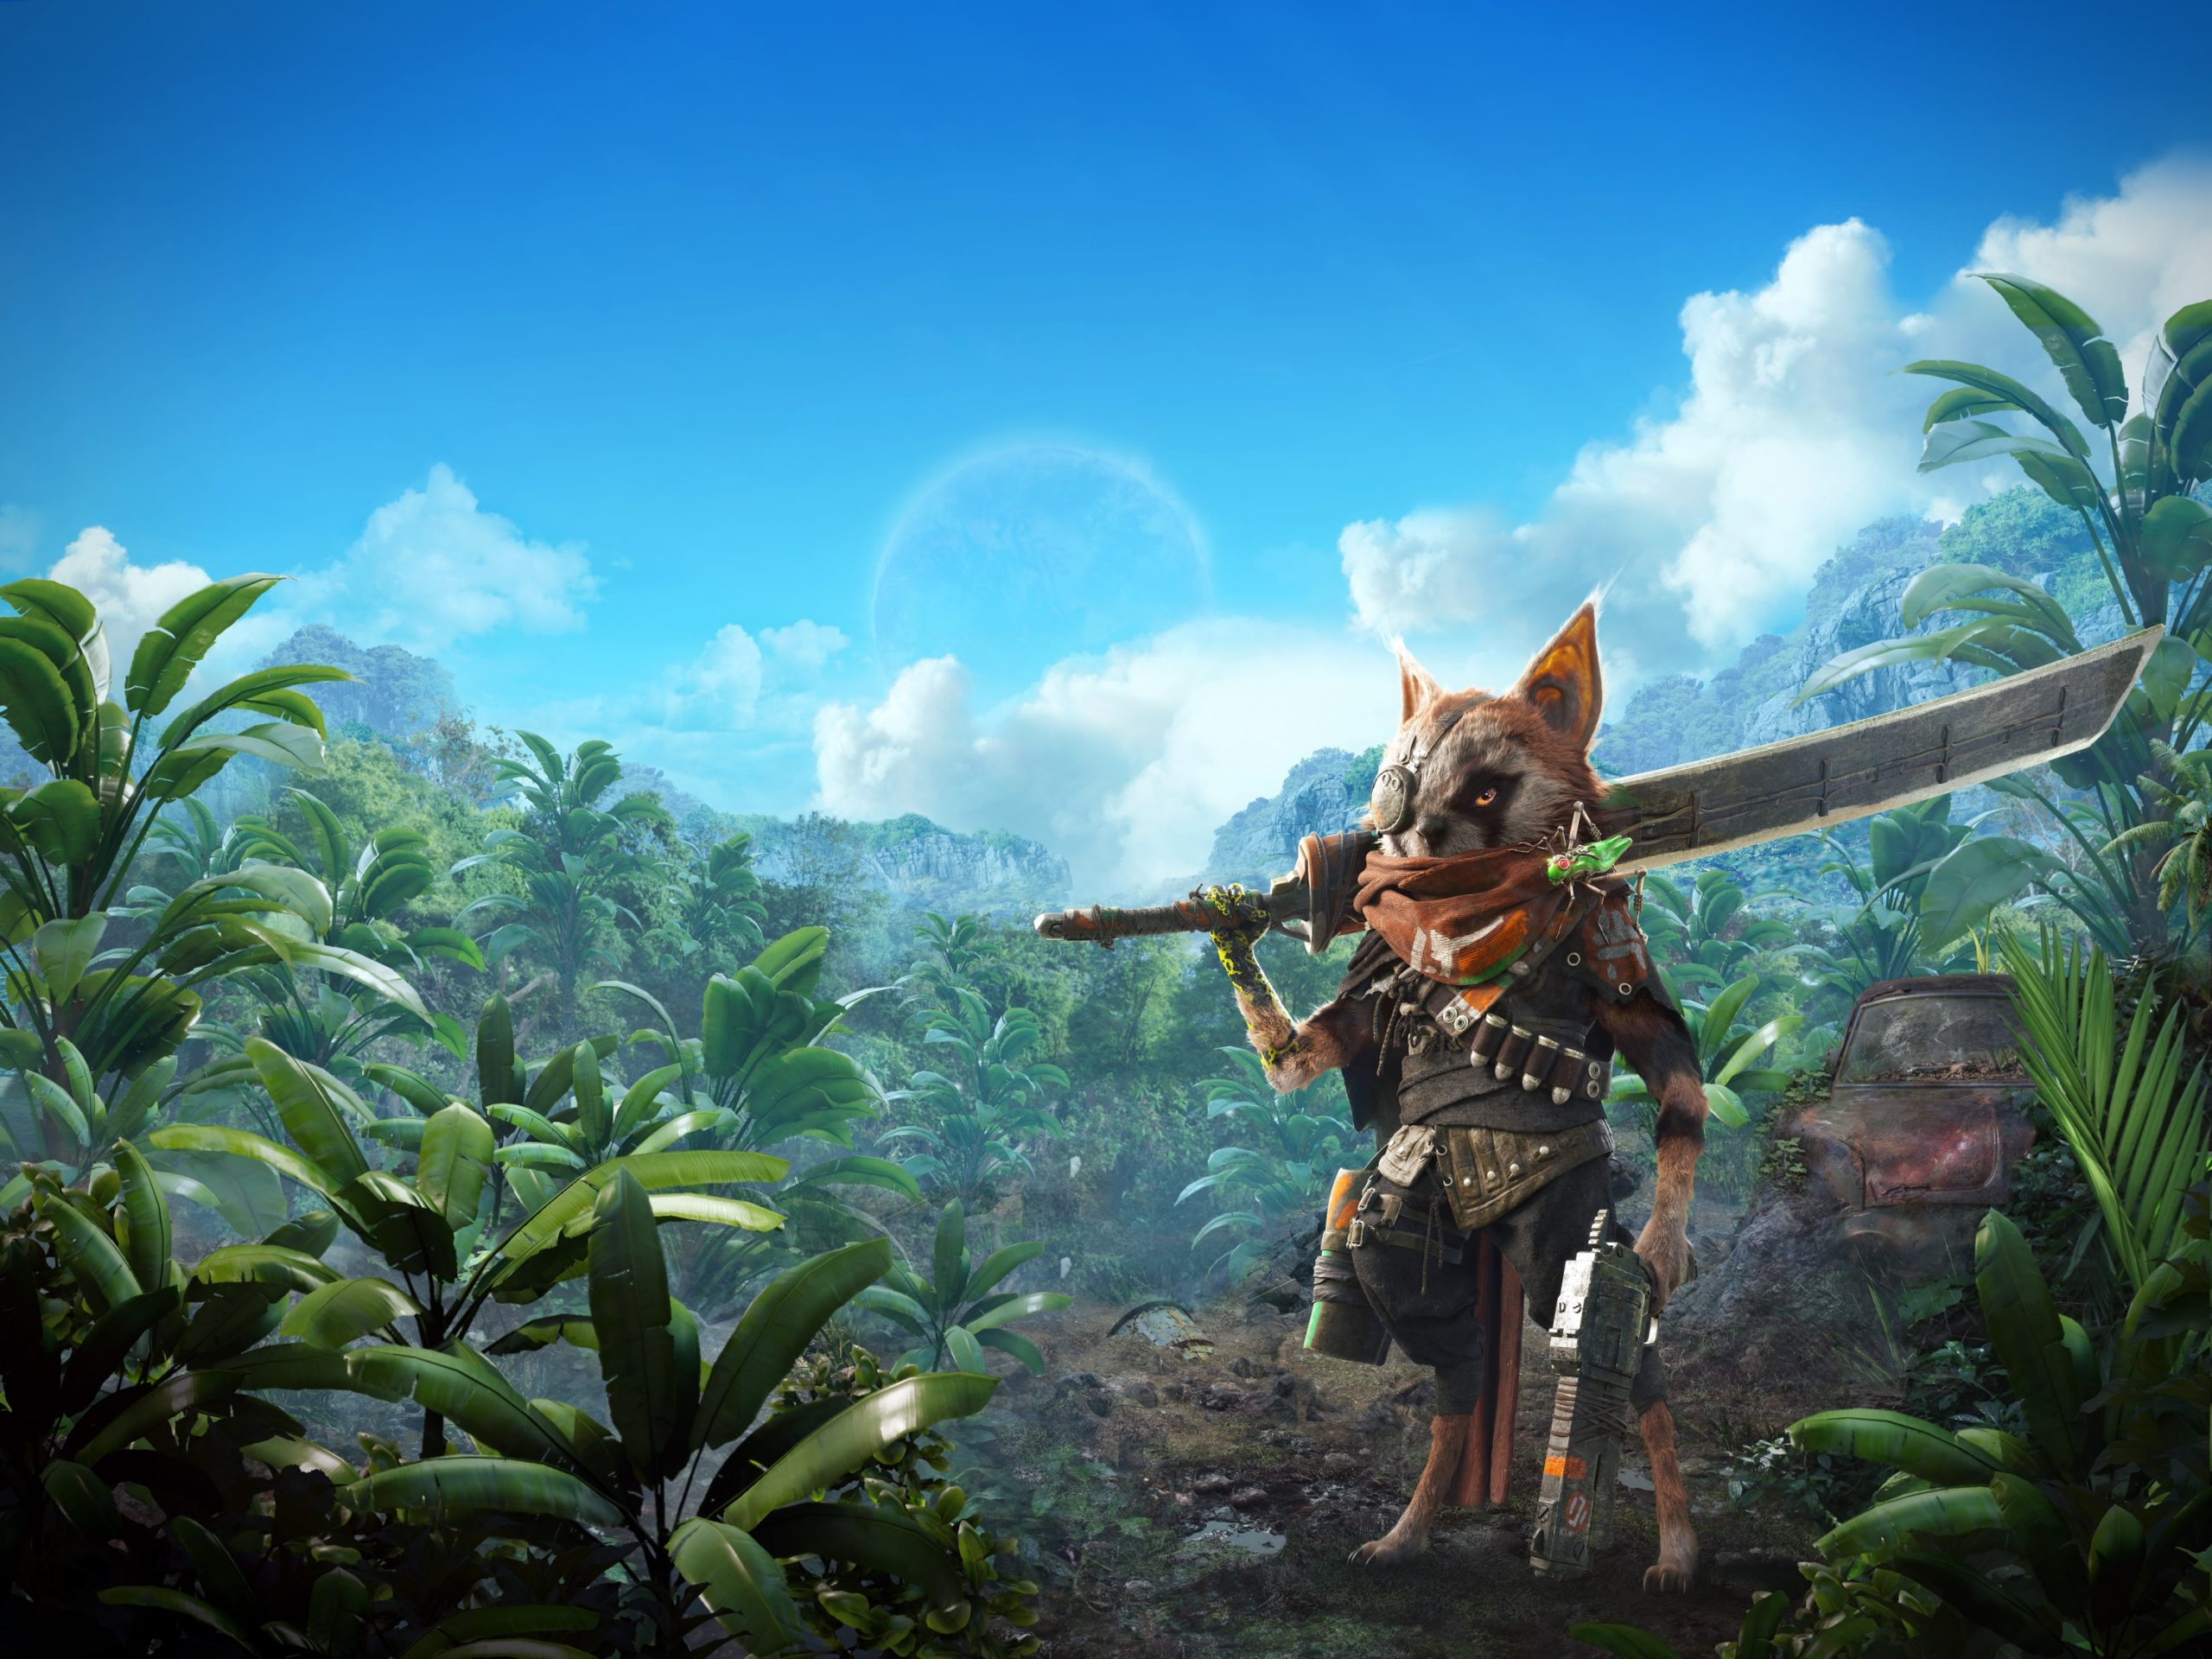 Biomutant artwork of a rogue-ish raccoon holding a sword and handgun, standing amongst a jungle of trees.